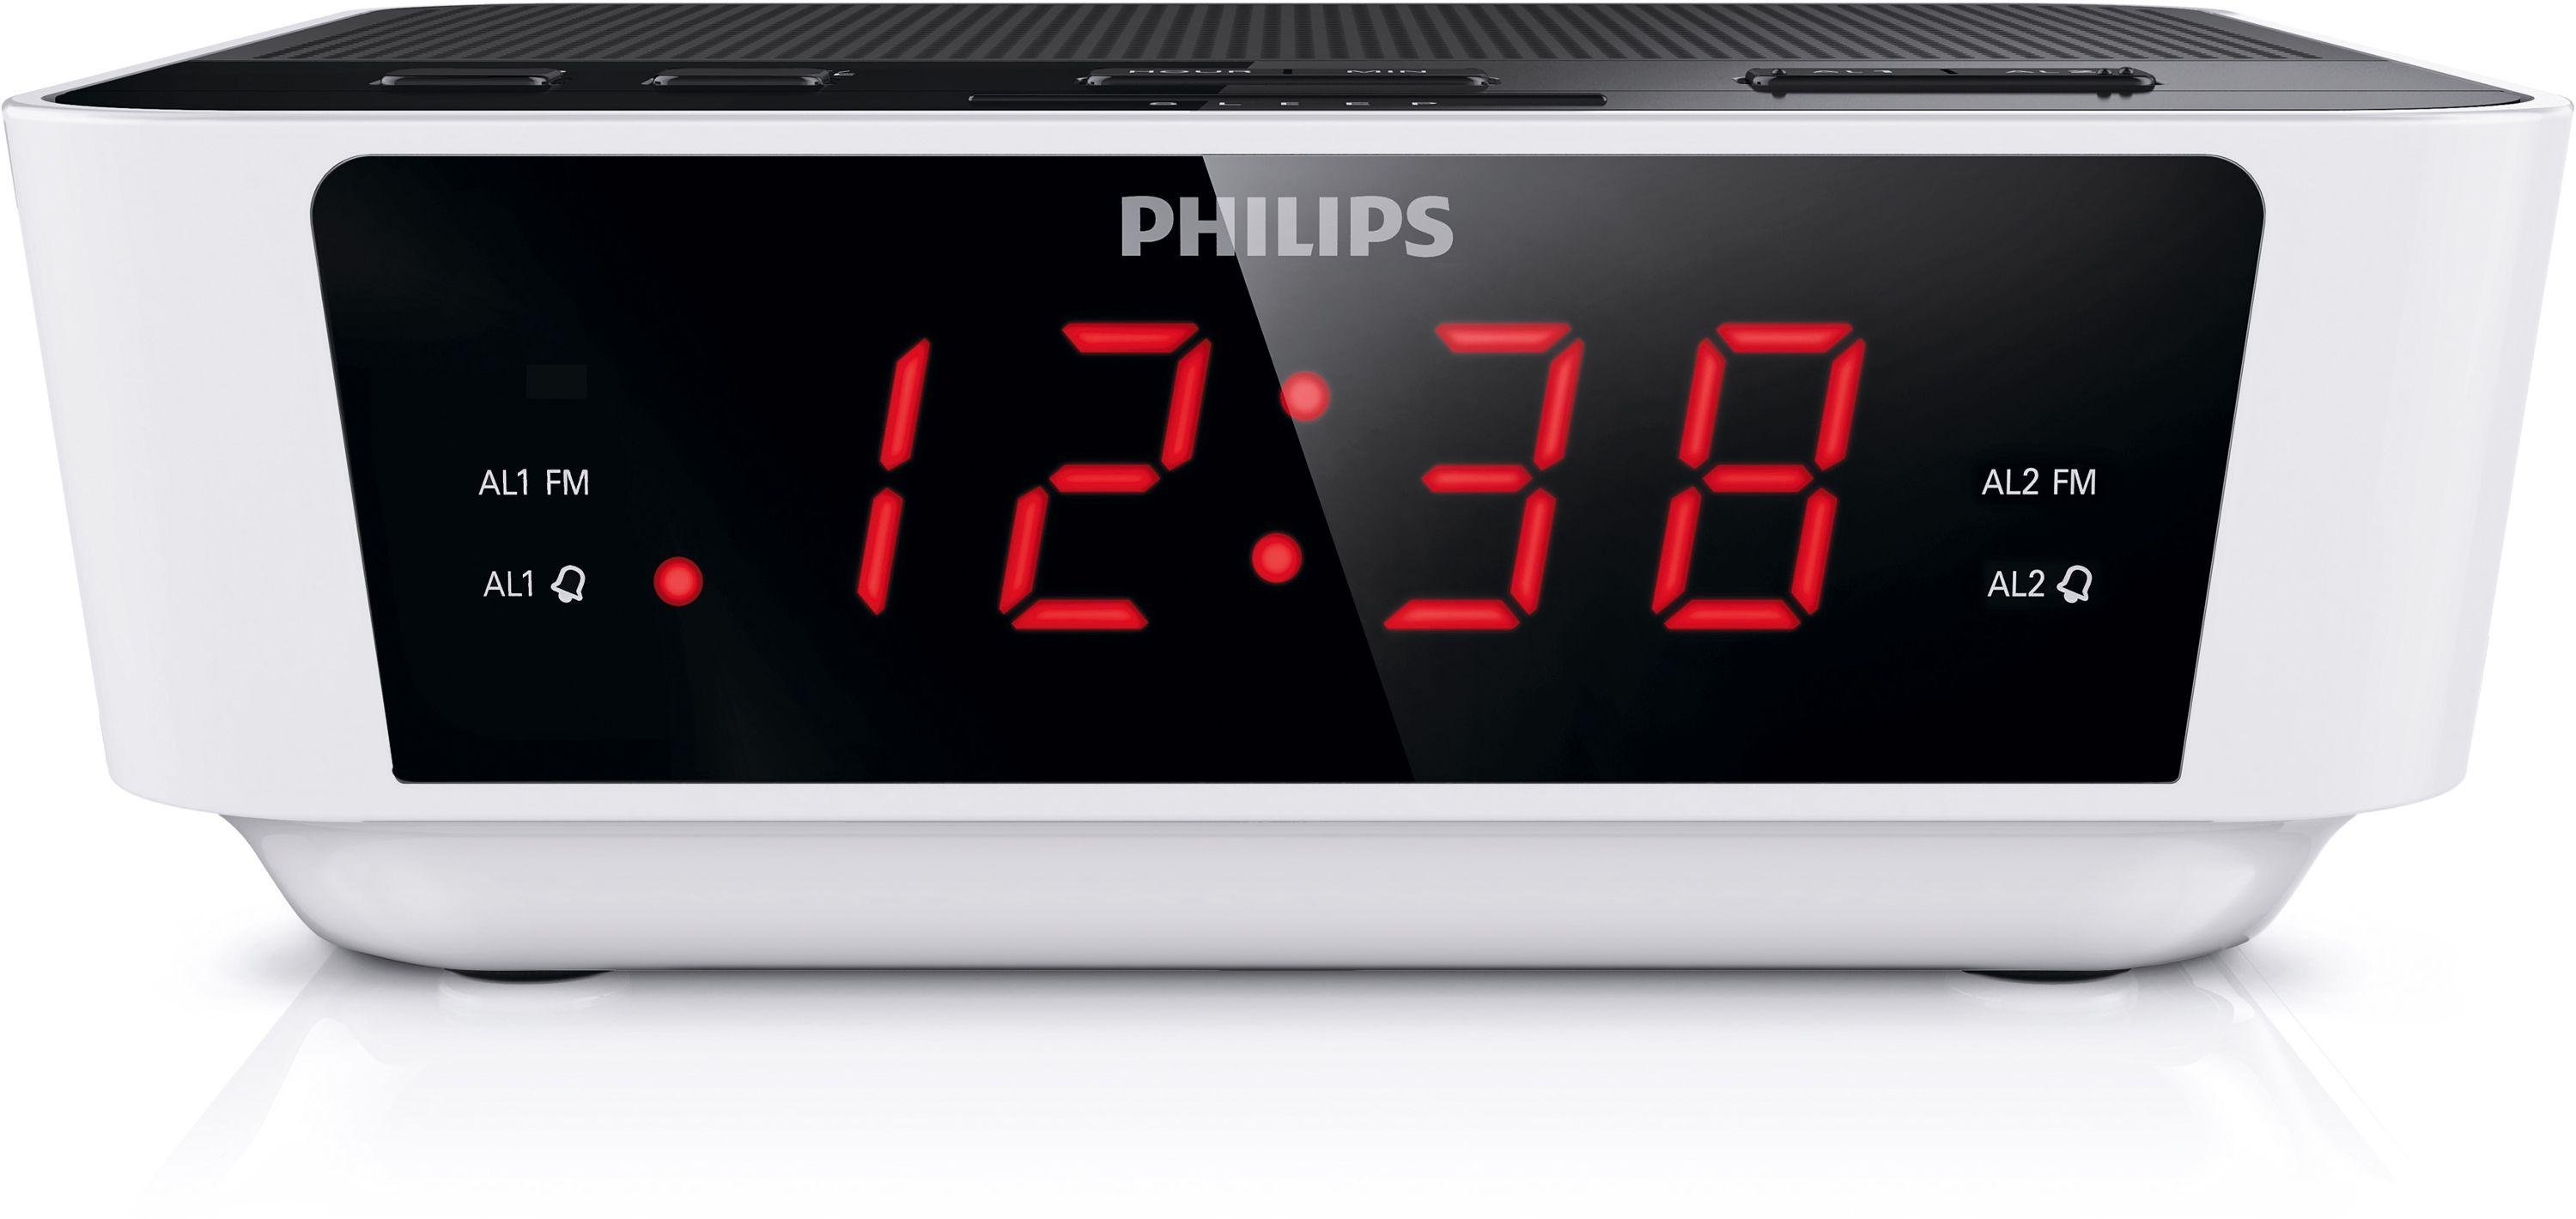 'Philips Aj3115/05 Digital Fm Alarm Clock Radio - White